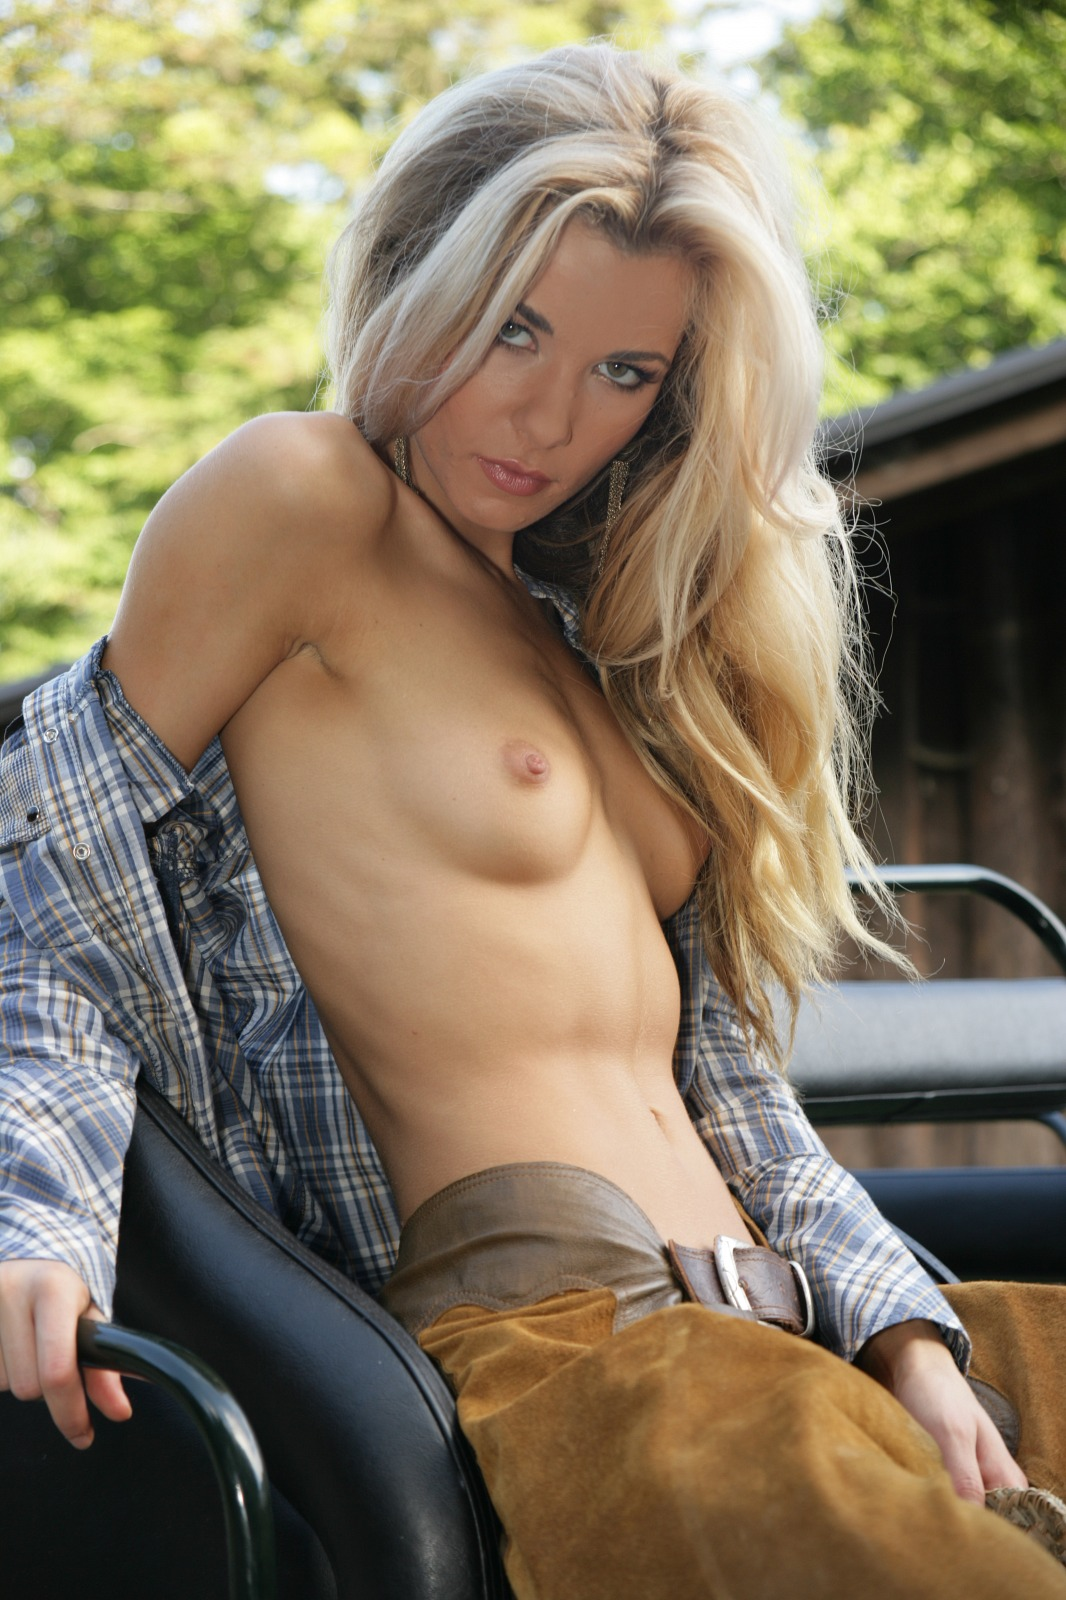 from Cassius hot cowgirl models naked